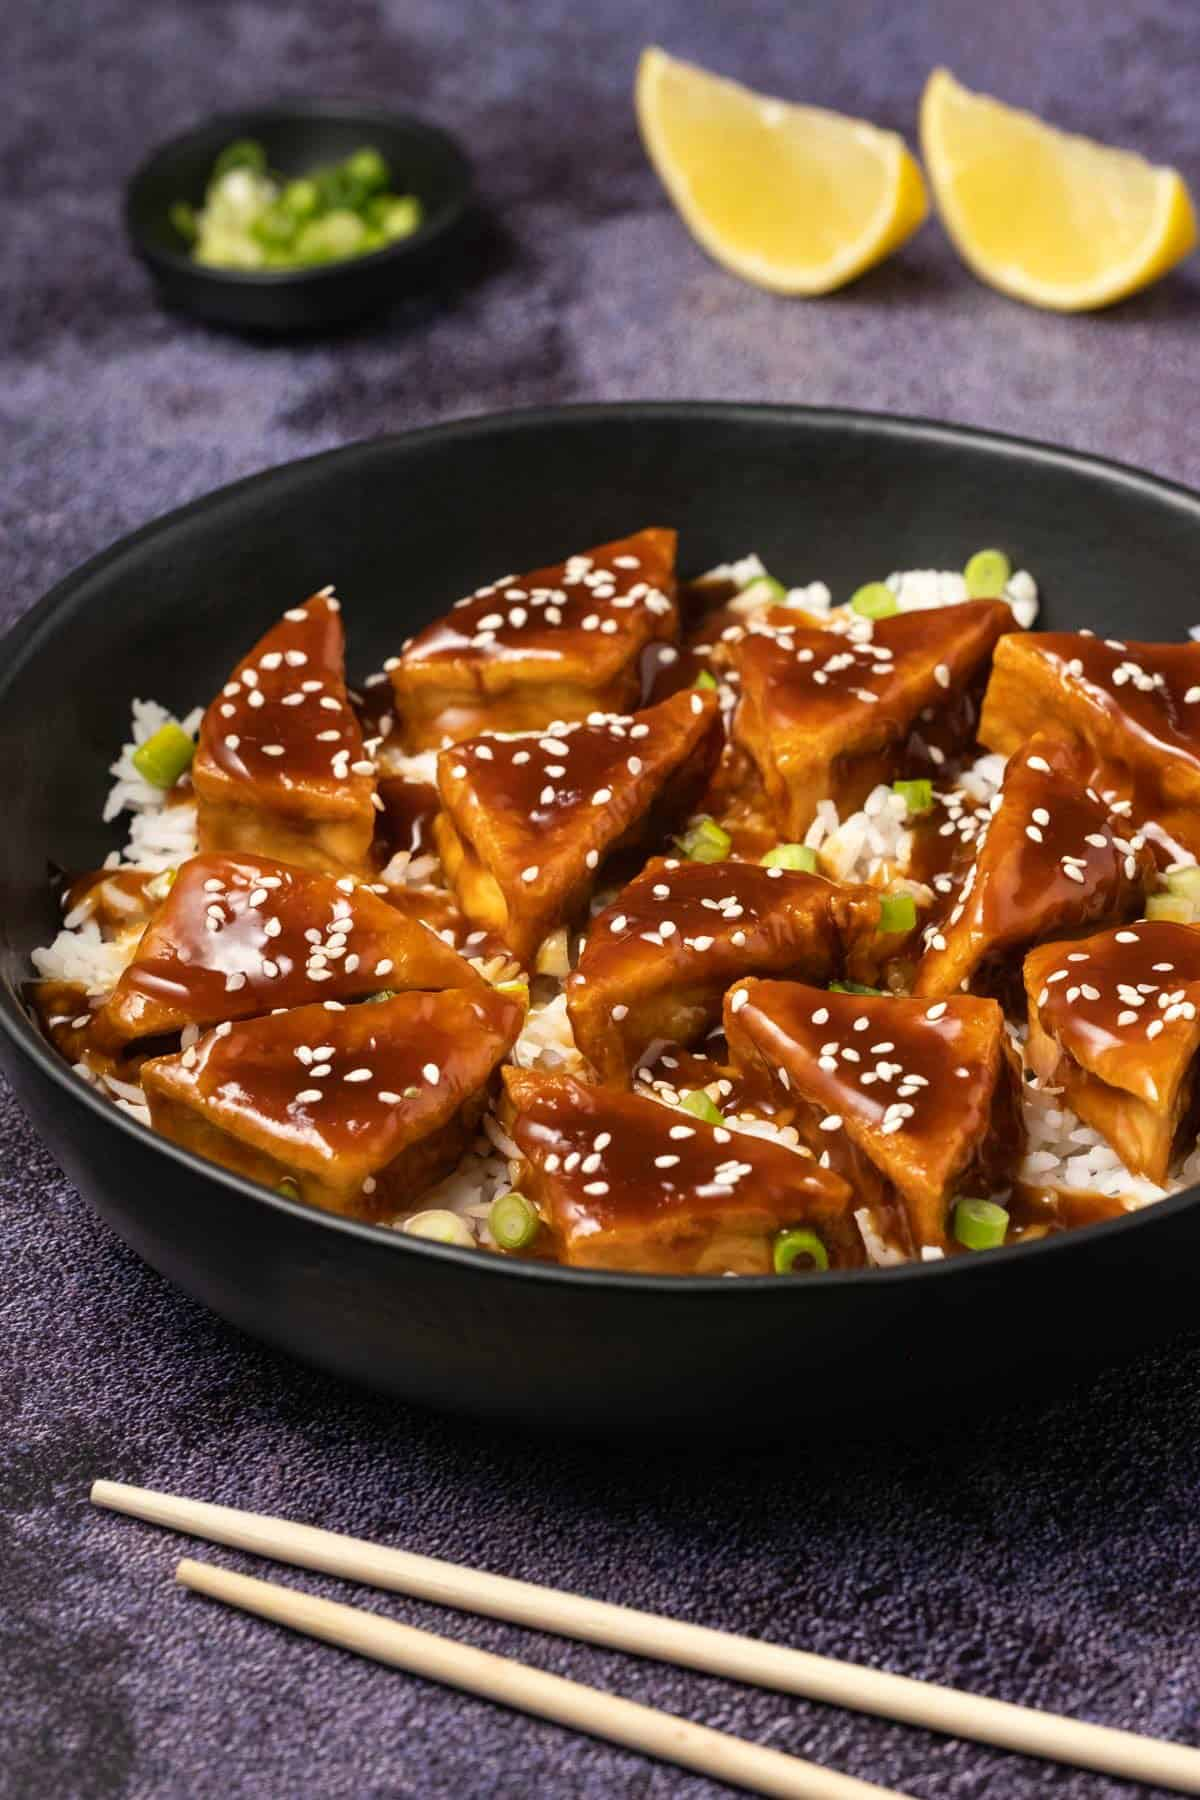 Teriyaki tofu with sesame seeds and rice in a black bowl.